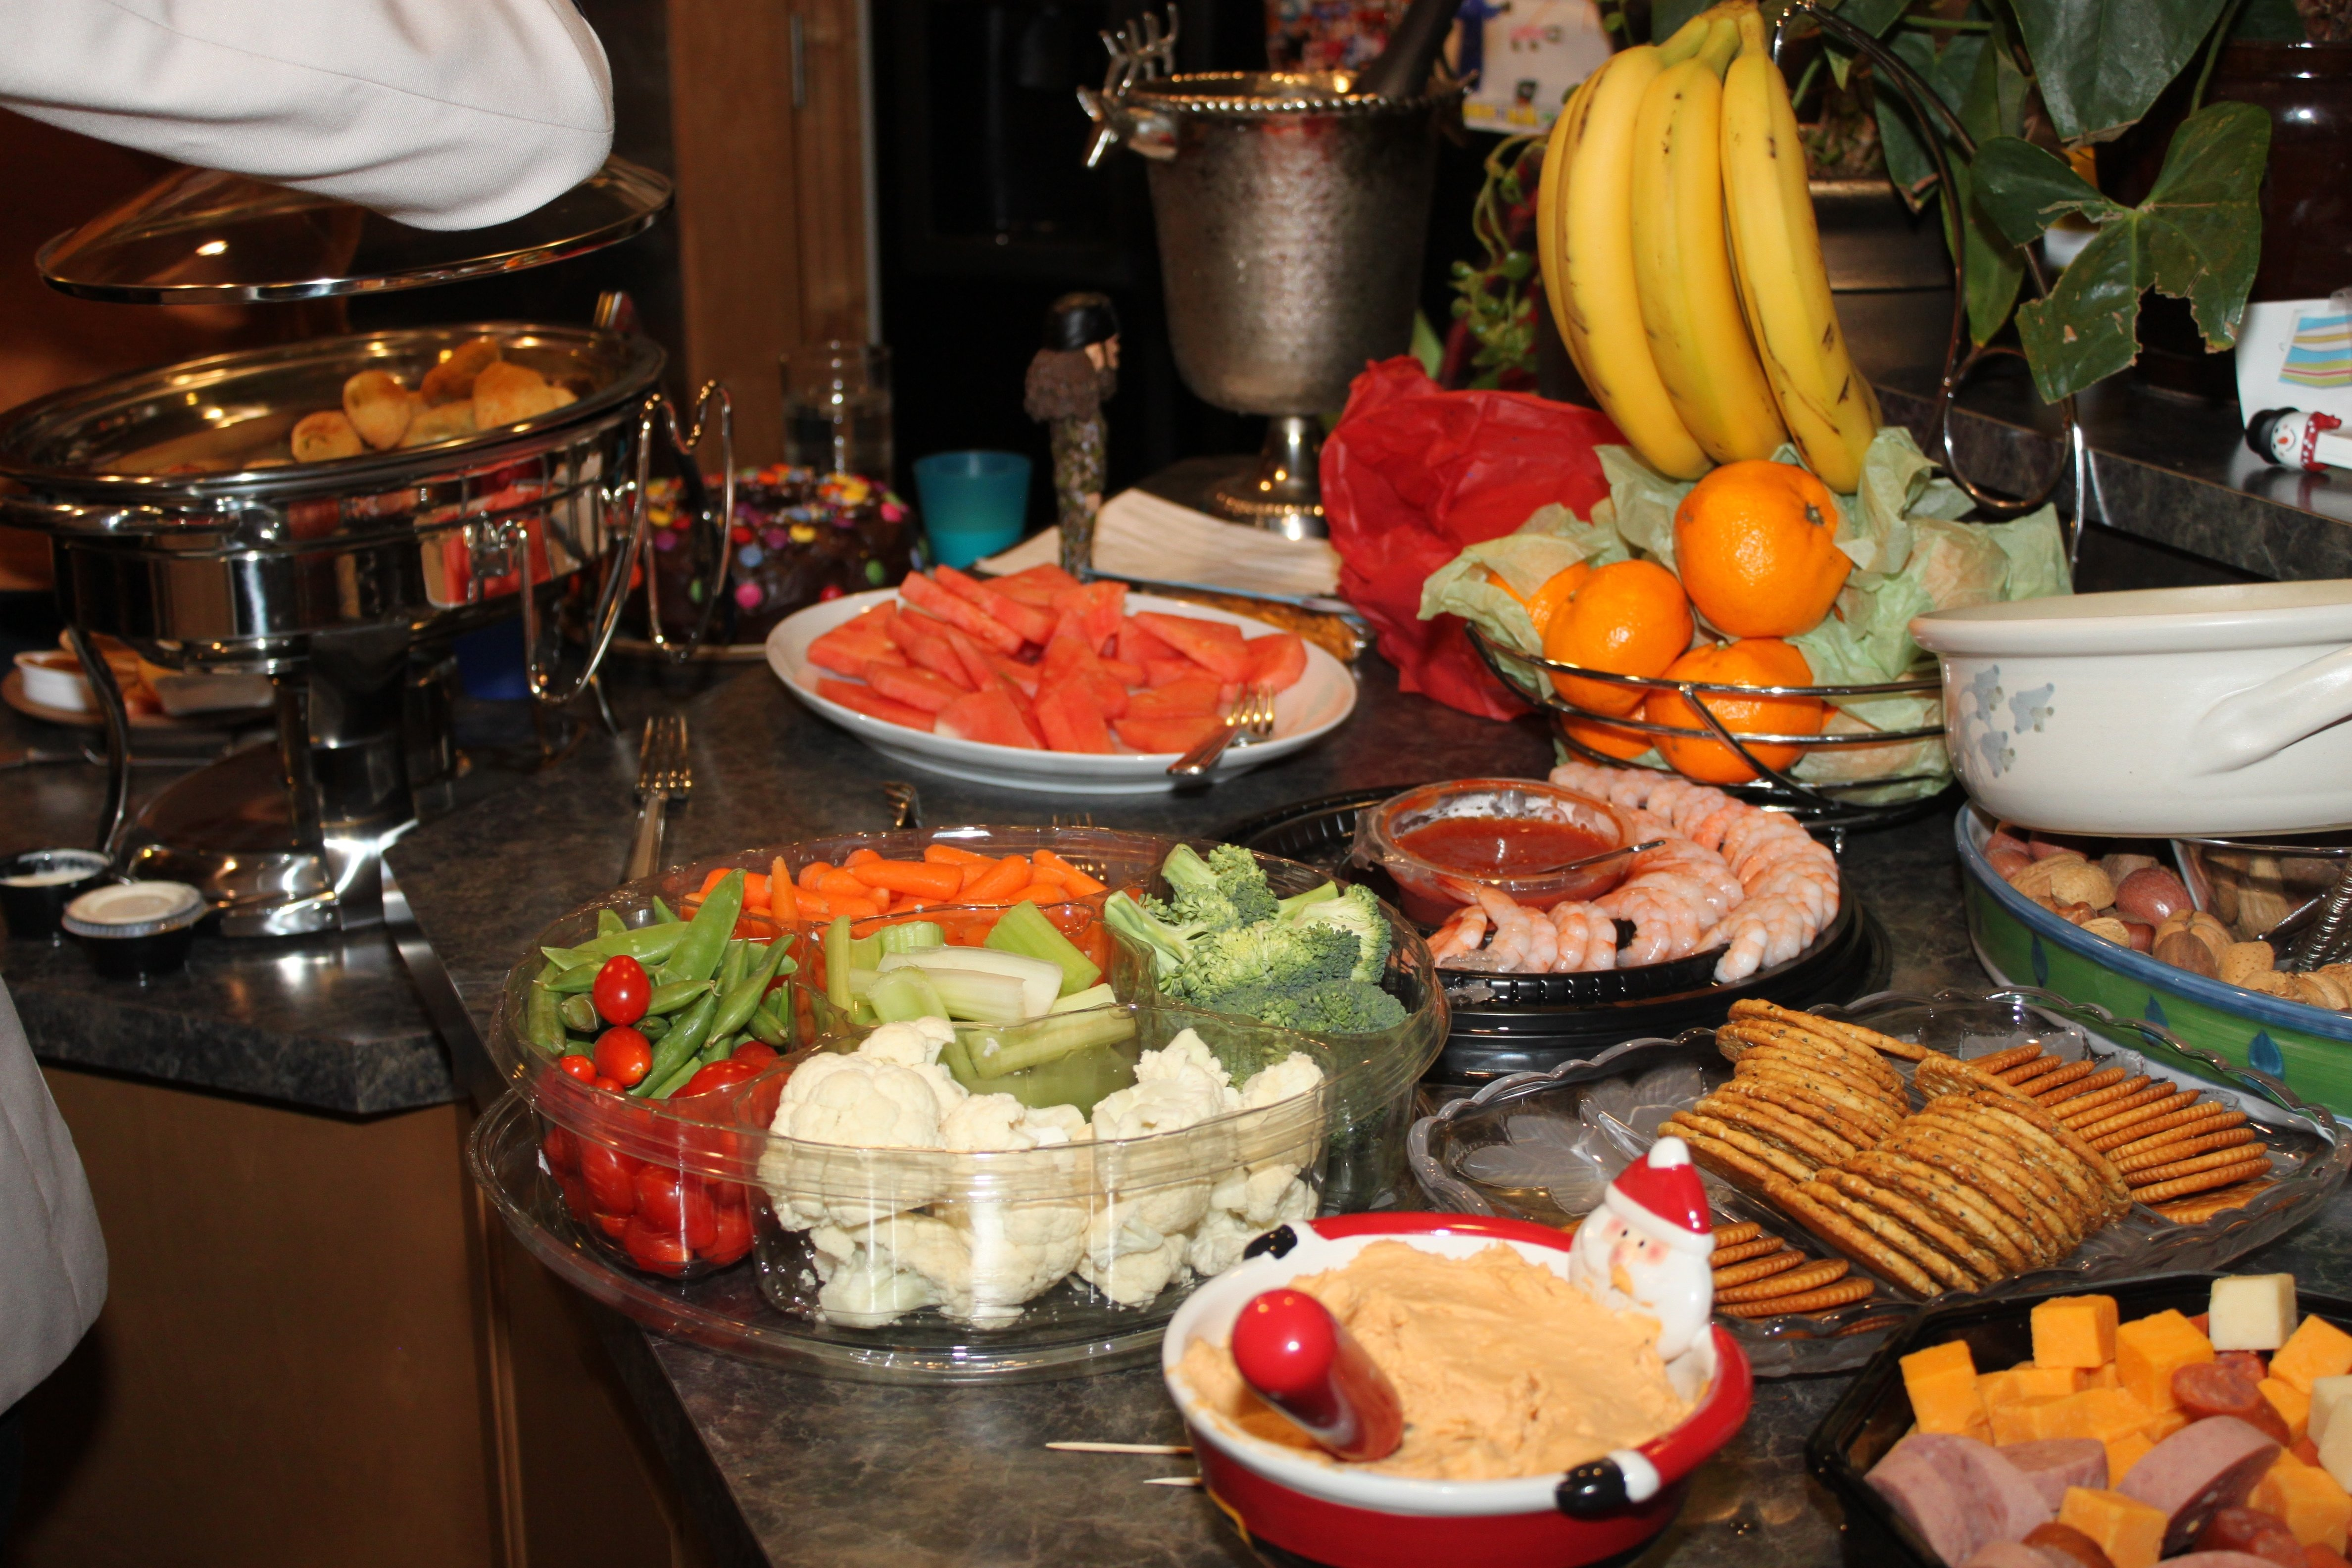 10 Unique New Years Eve Finger Food Ideas years eve family party ideas 2021